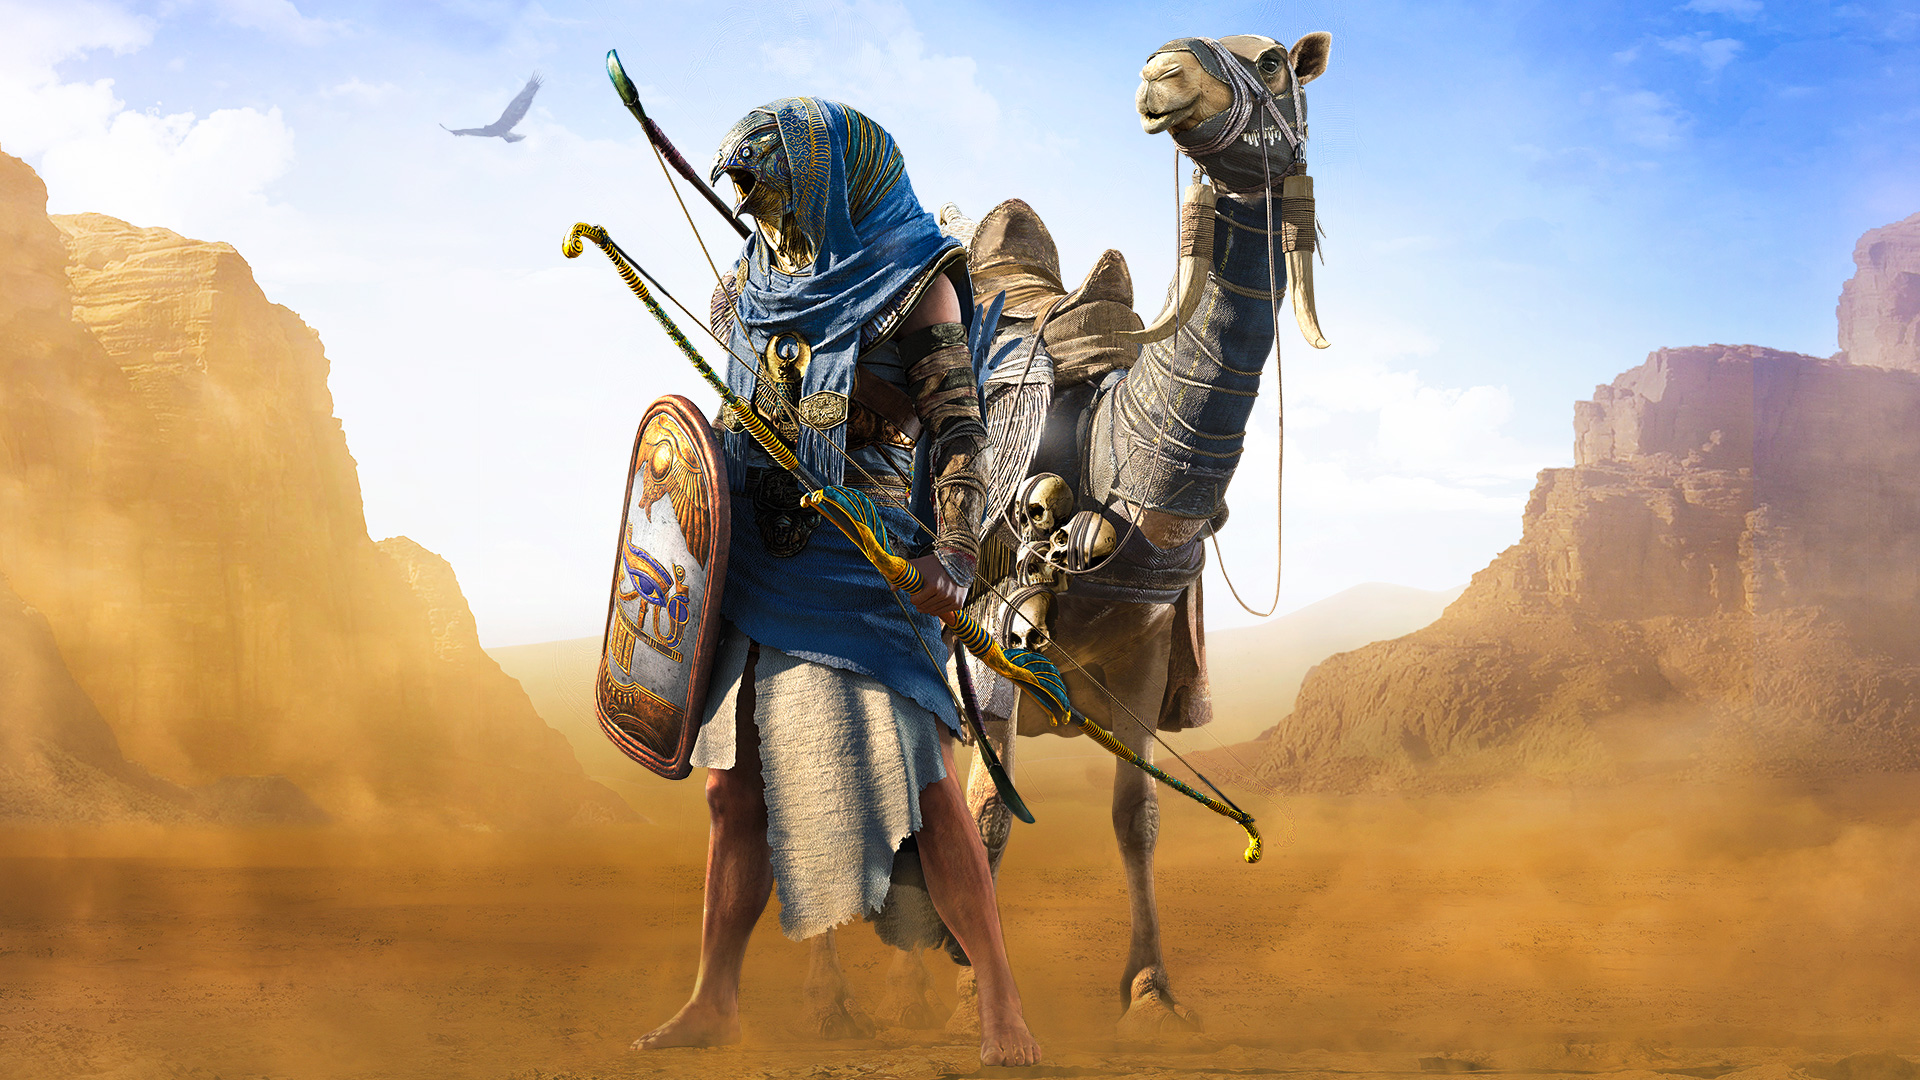 Horus Assassins Creed Origins Hd Games 4k Wallpapers Images Backgrounds Photos And Pictures